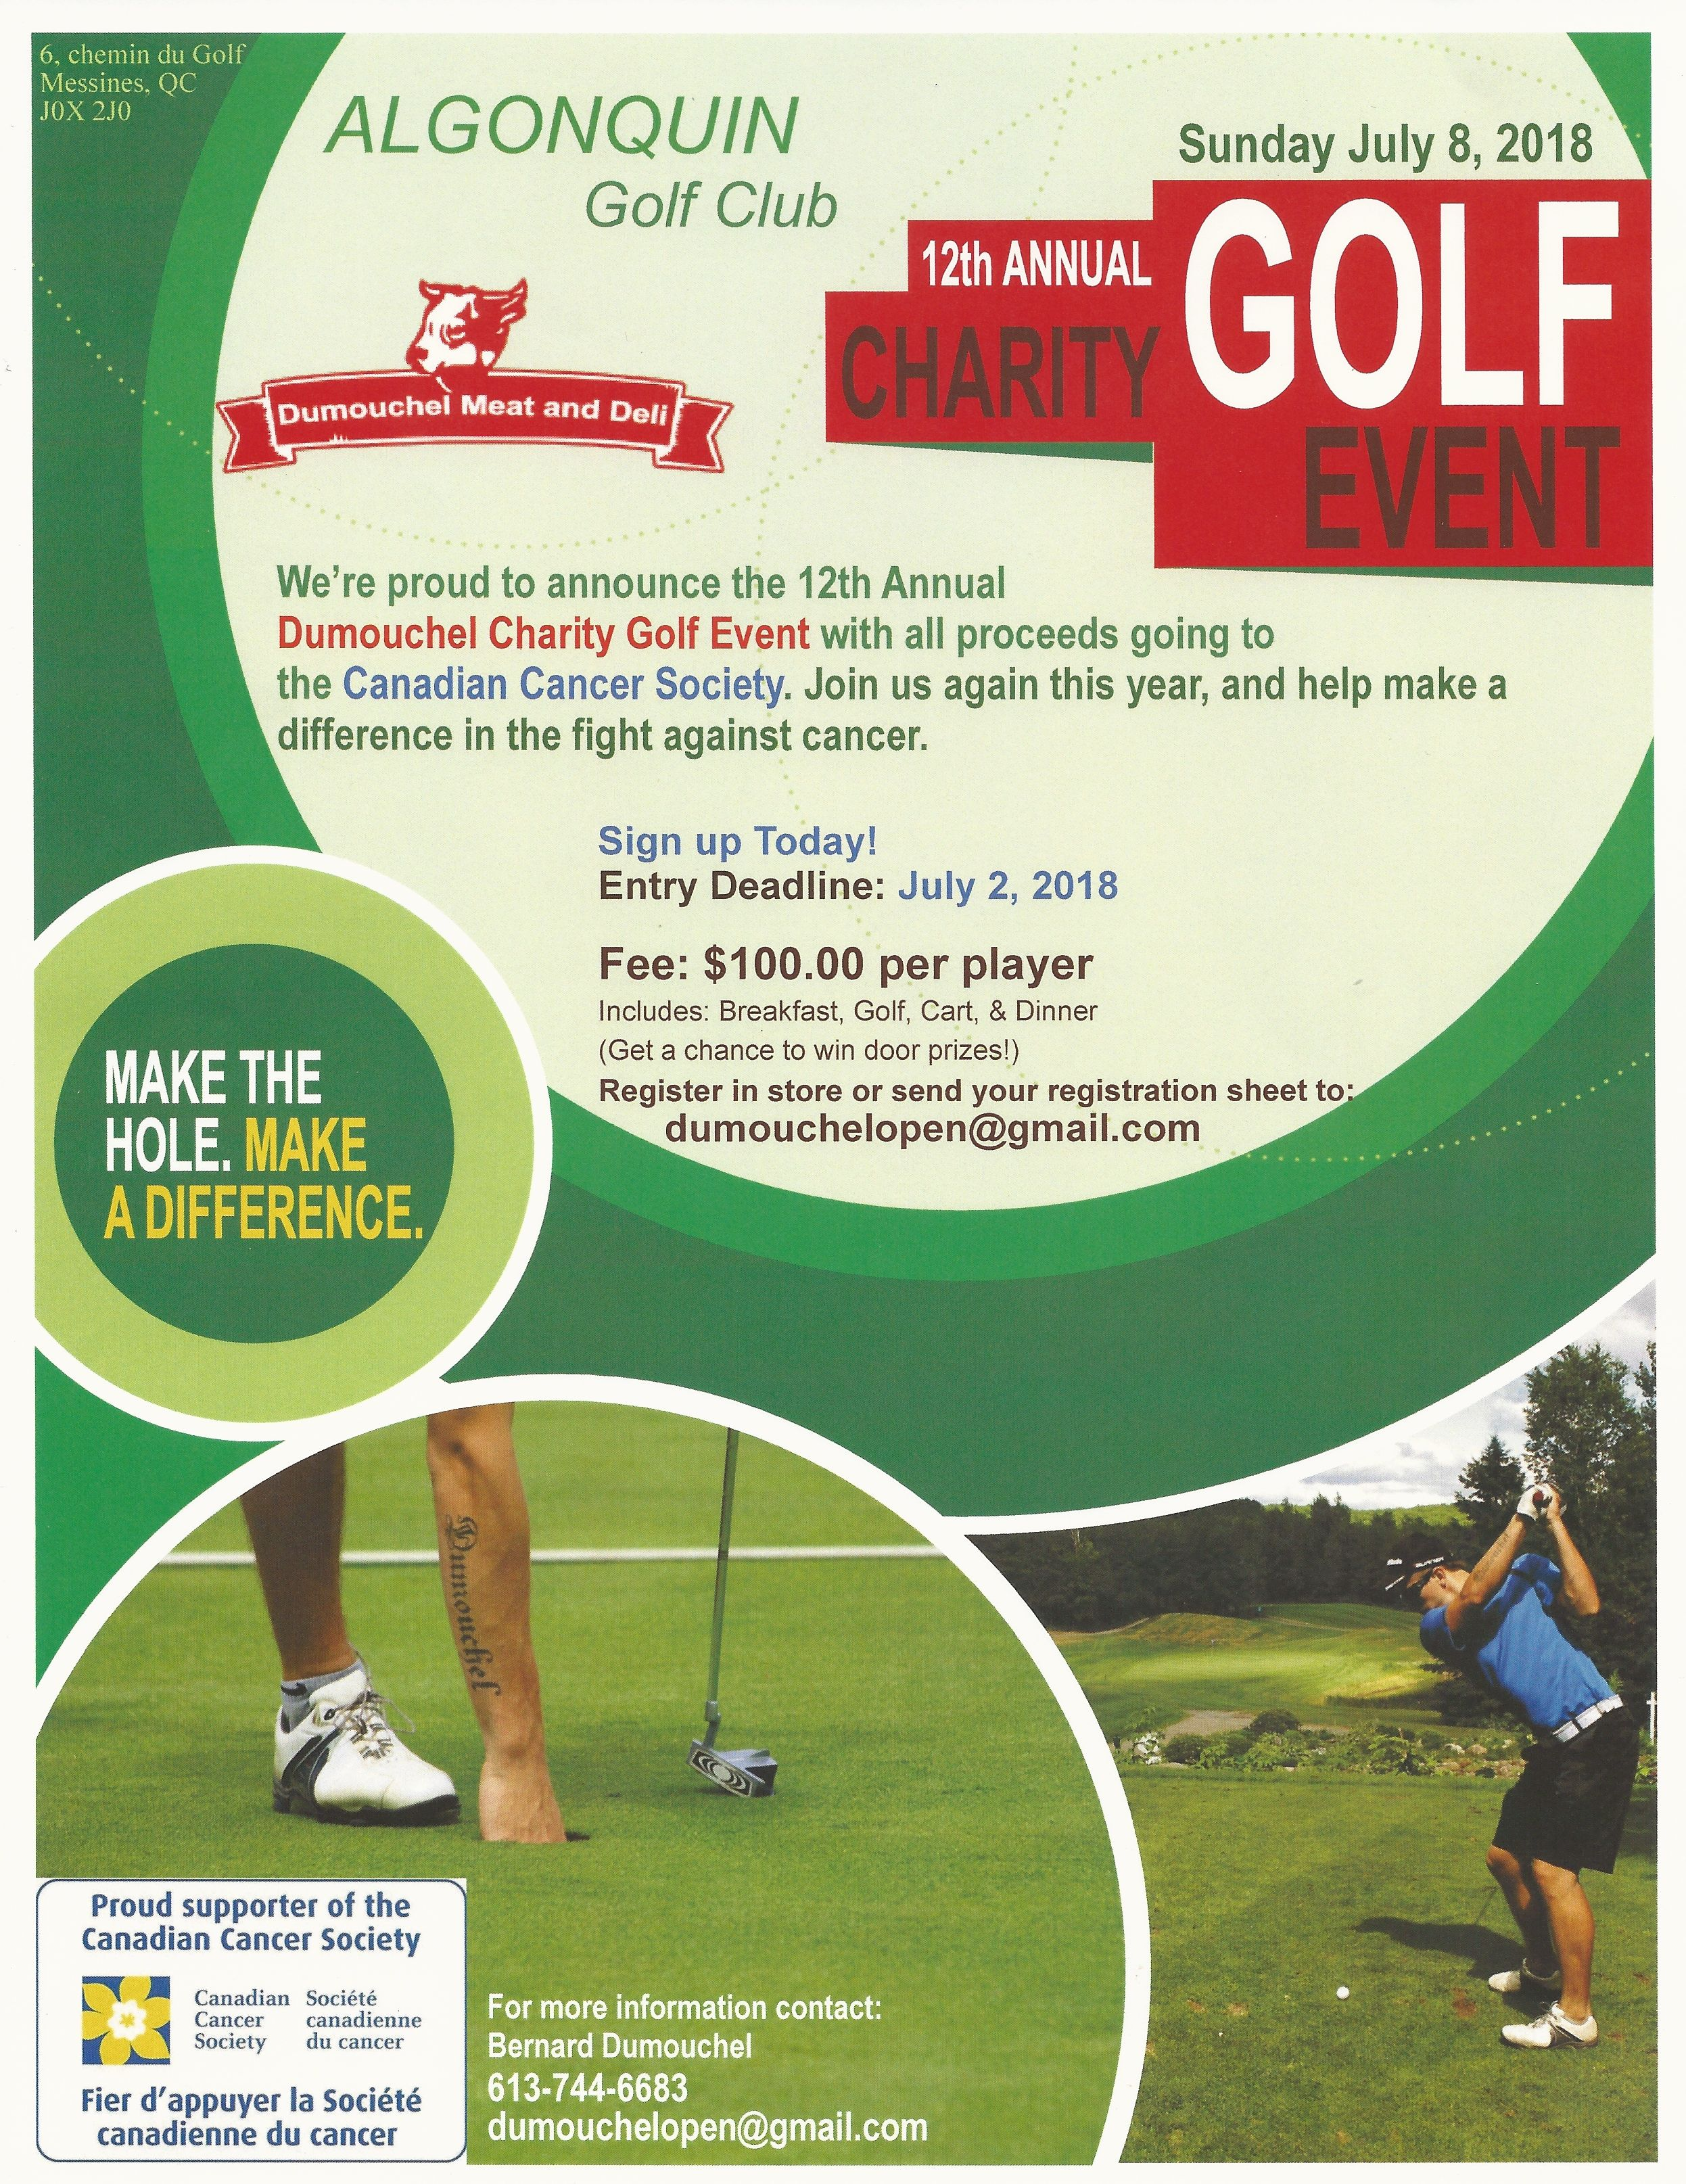 Annual Dumouchel Charity Golf Event - all proceeds go to Canadian Cancer Society